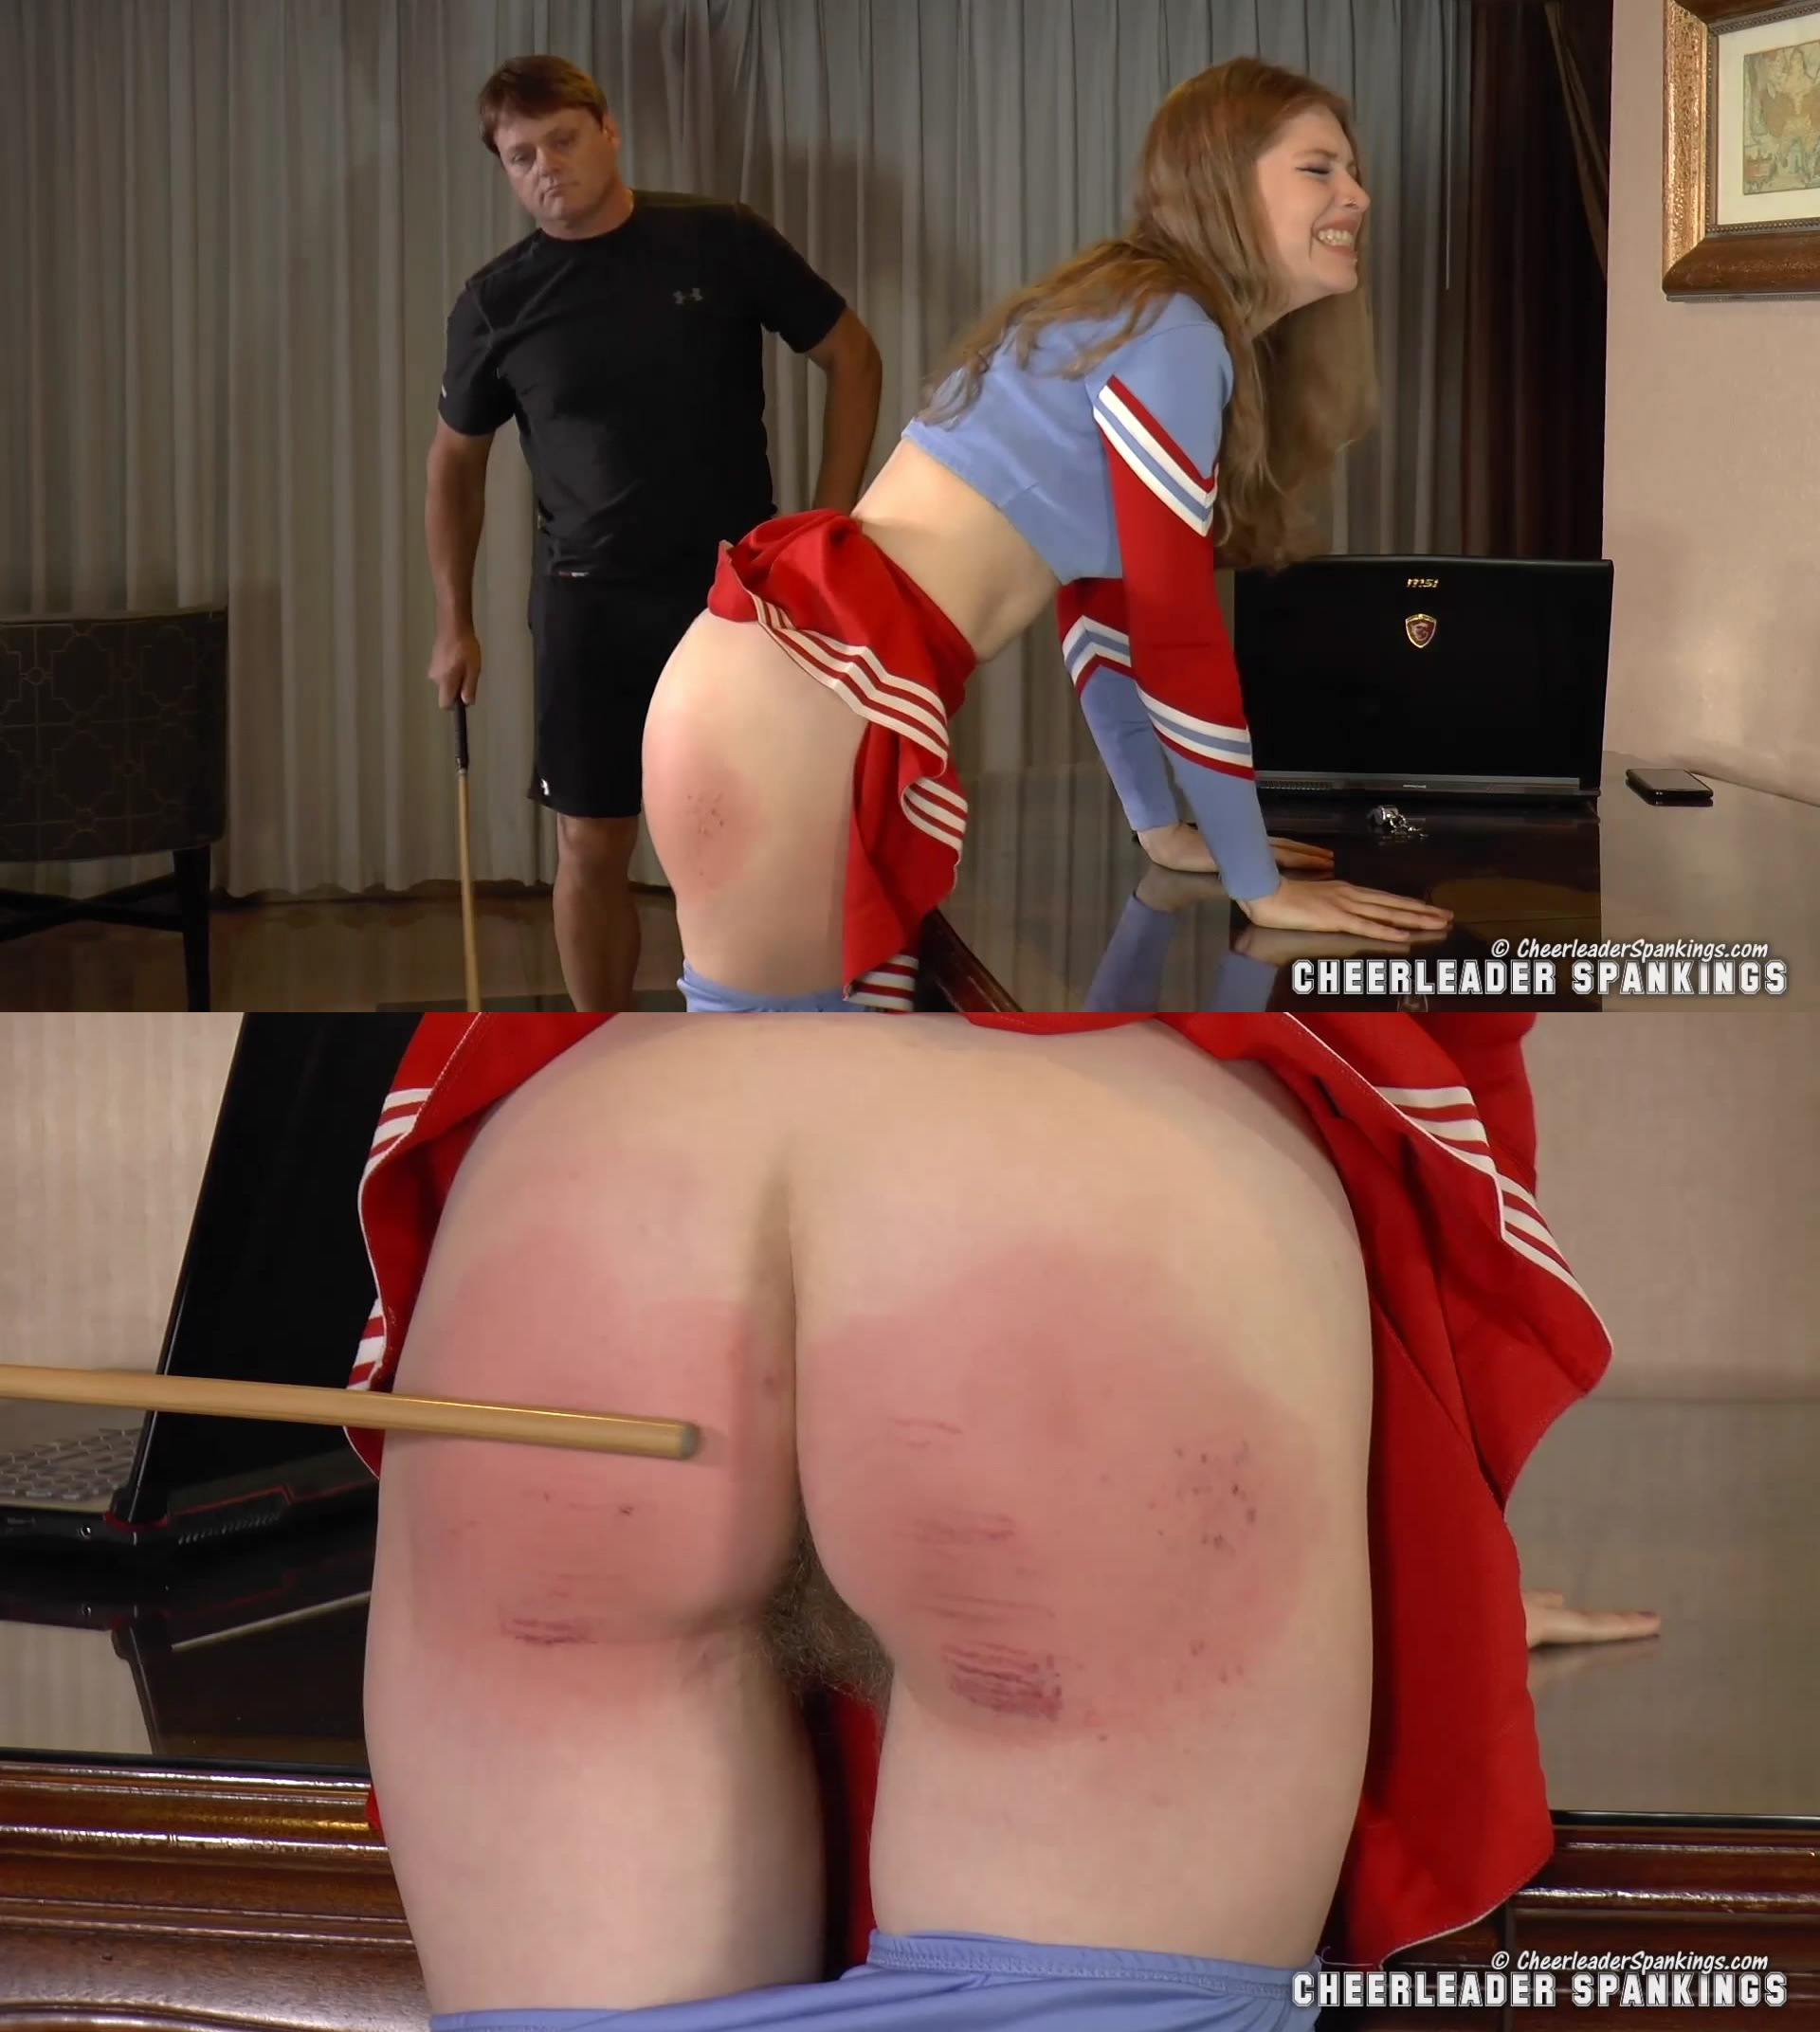 Cheerleader Spankings – MP4/HD – Chearleader Spanked